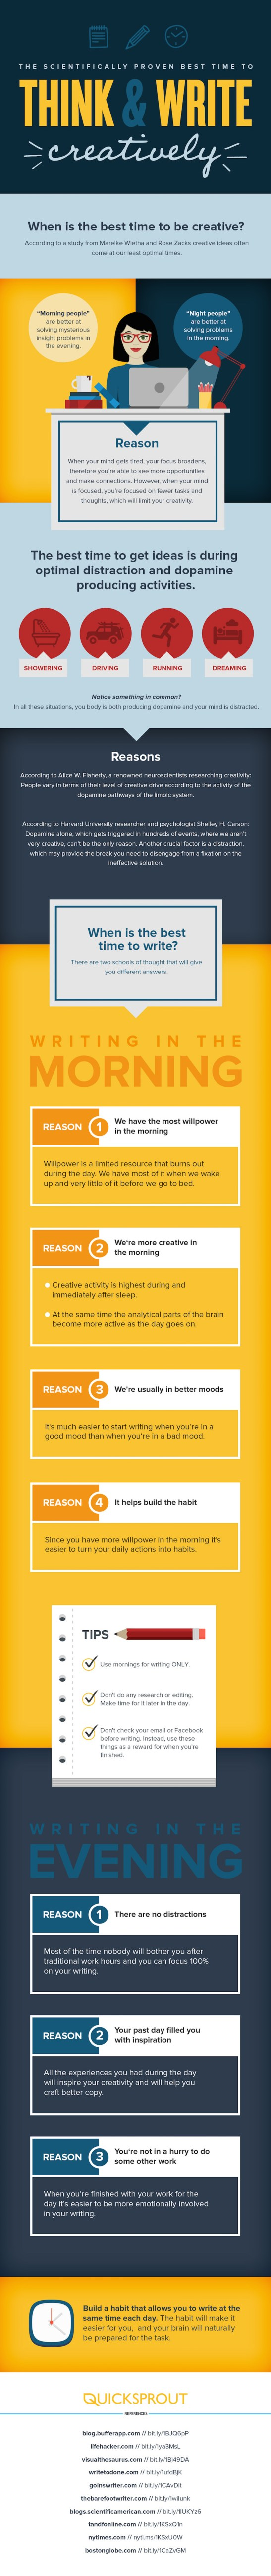 The Scientifically Proven Best Time to Think and Write Creatively